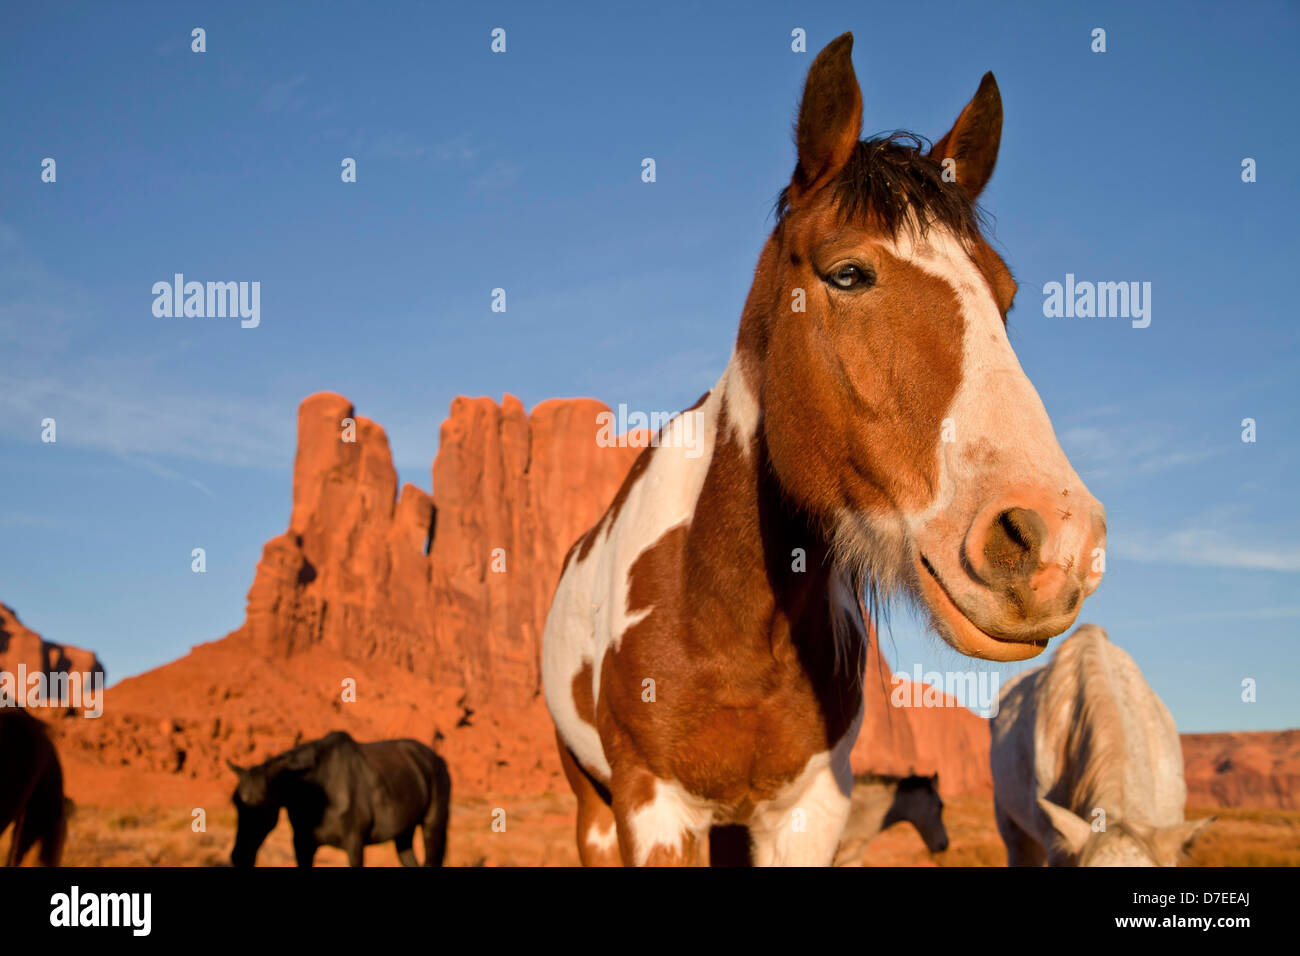 Navajo Indian horses at Monument Valley Navajo Tribal Park, United States of America, USA - Stock Image